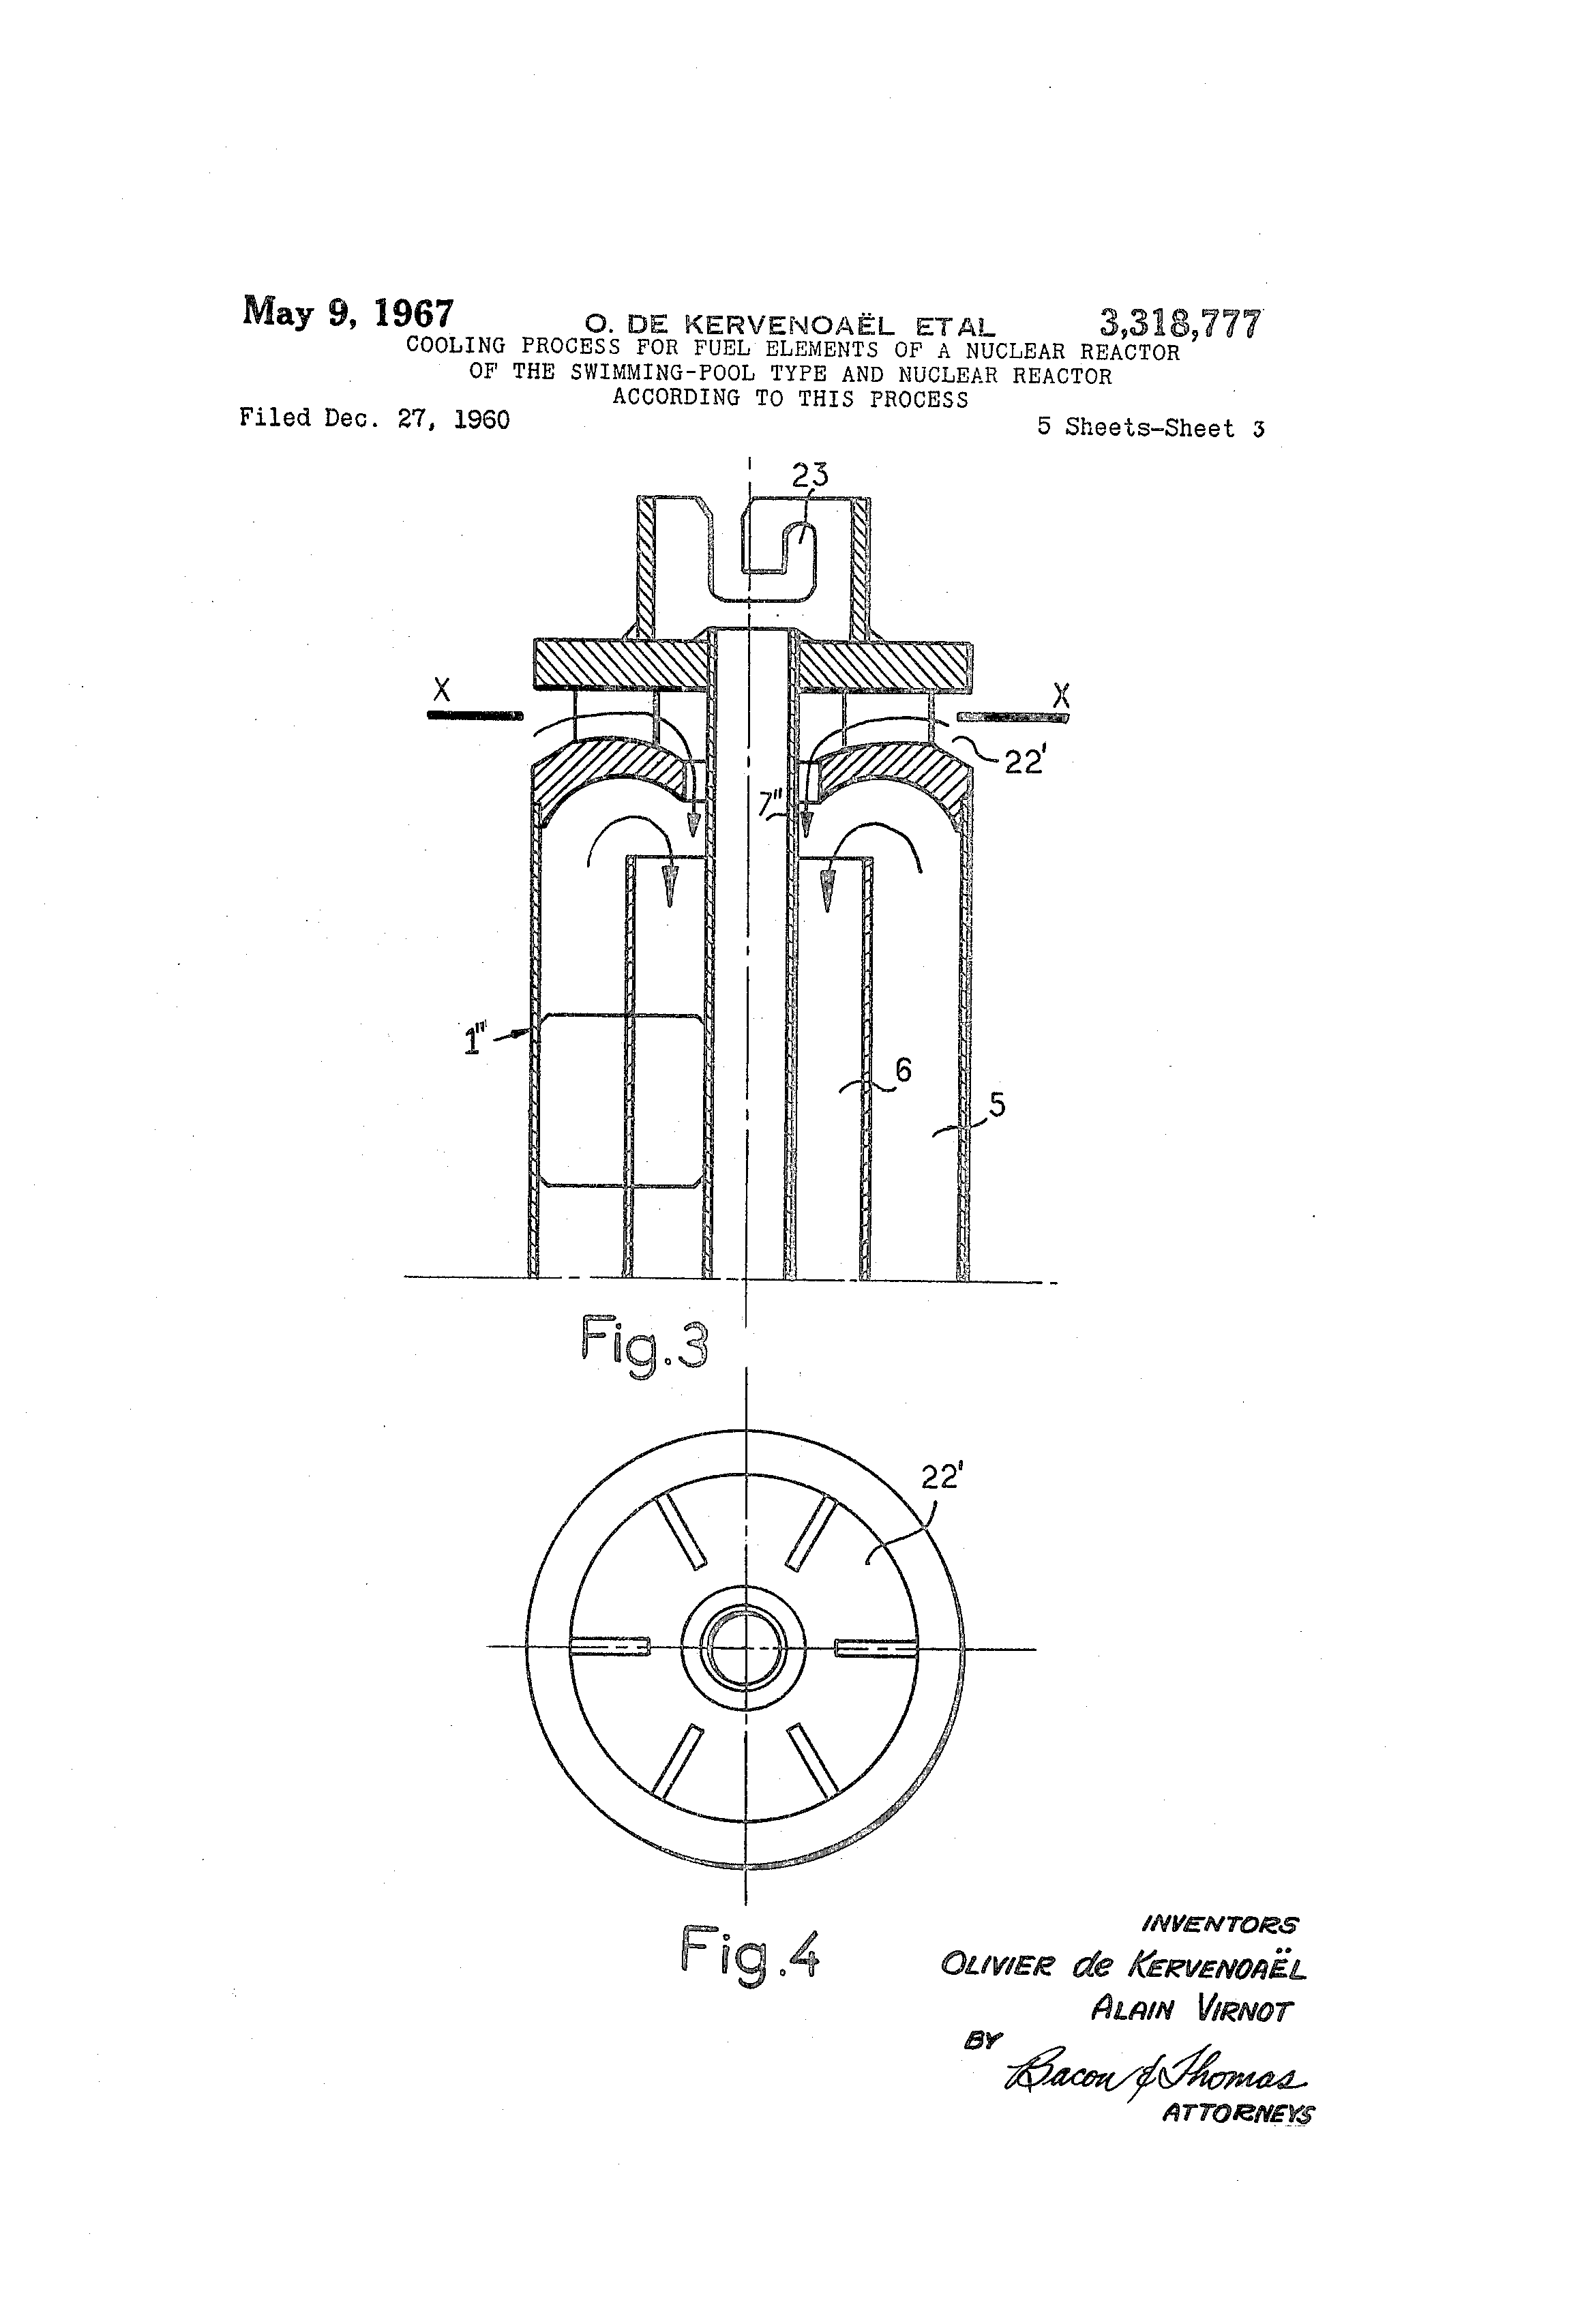 Patent Us3318777 Cooling Process For Fuel Elements Of A Nuclear Power Plant Flow Diagram Drawing